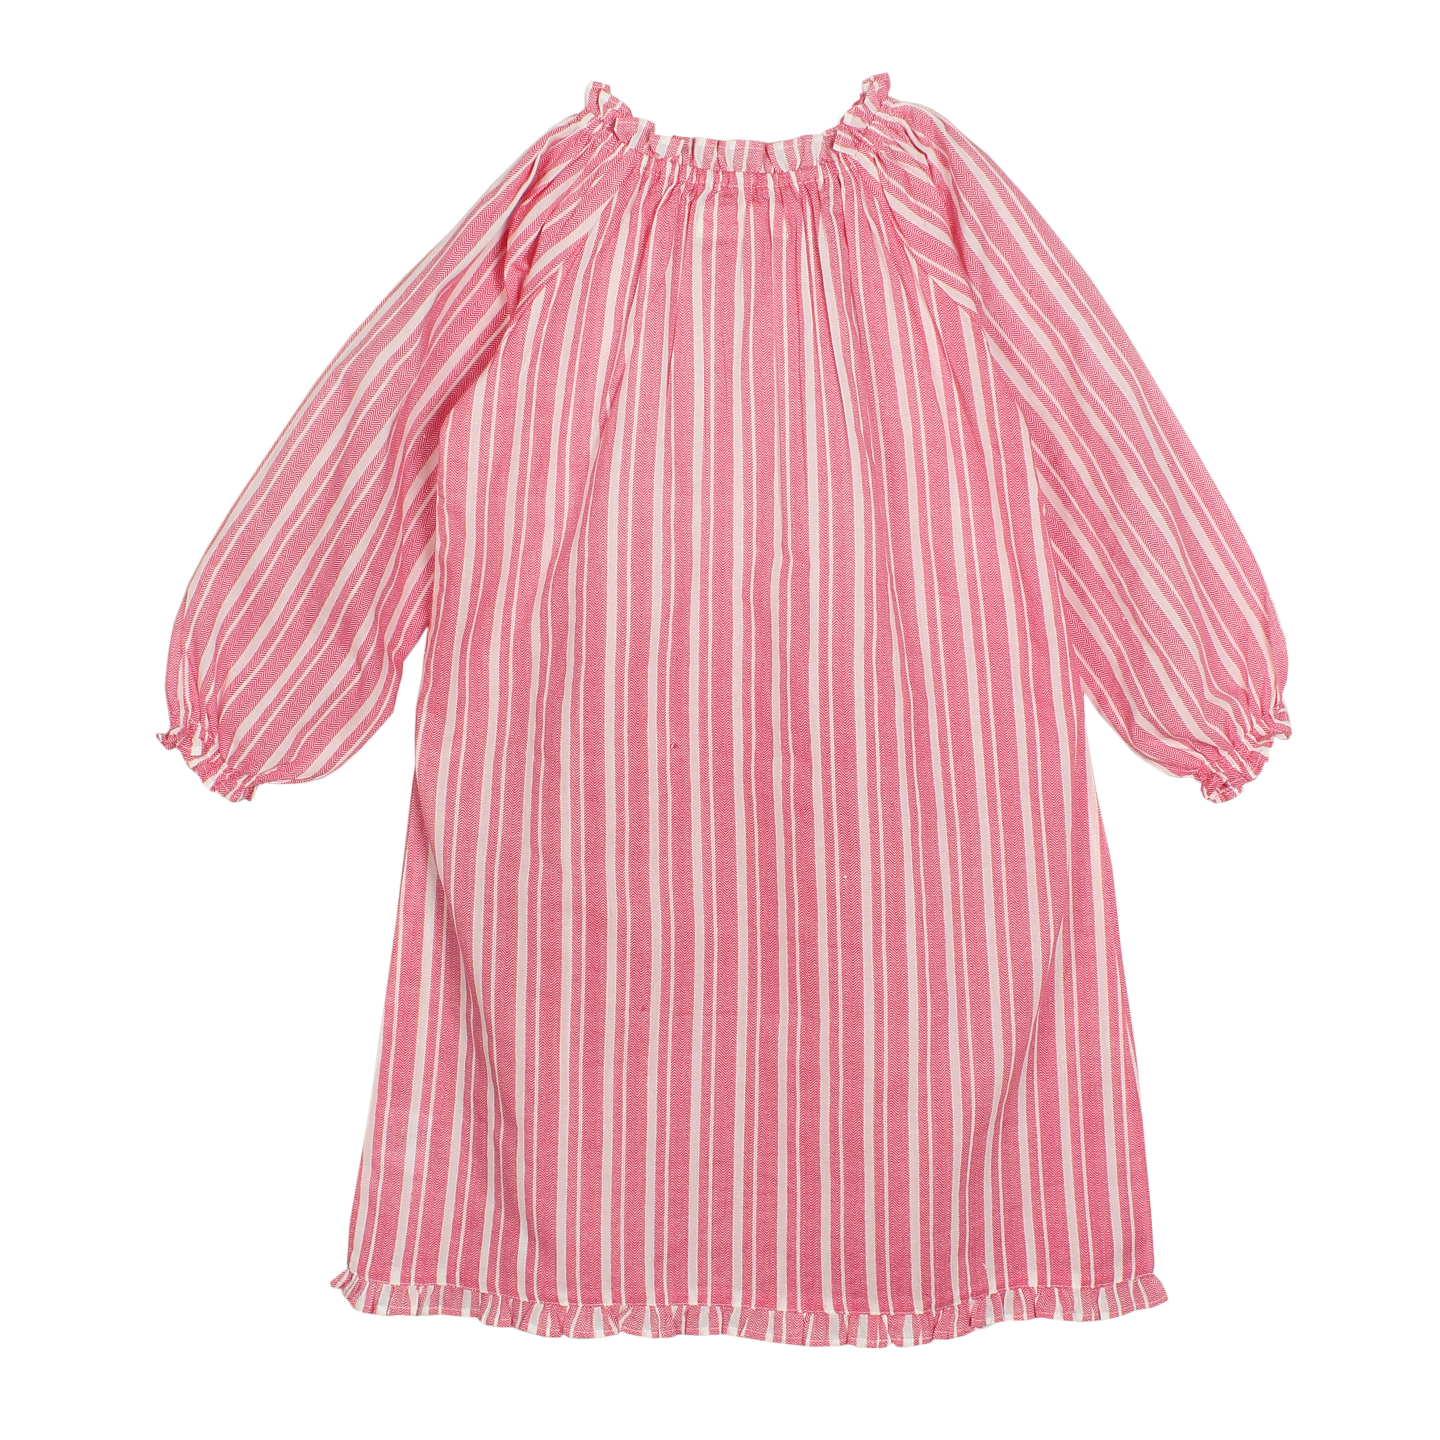 French pink full sleeve night dress